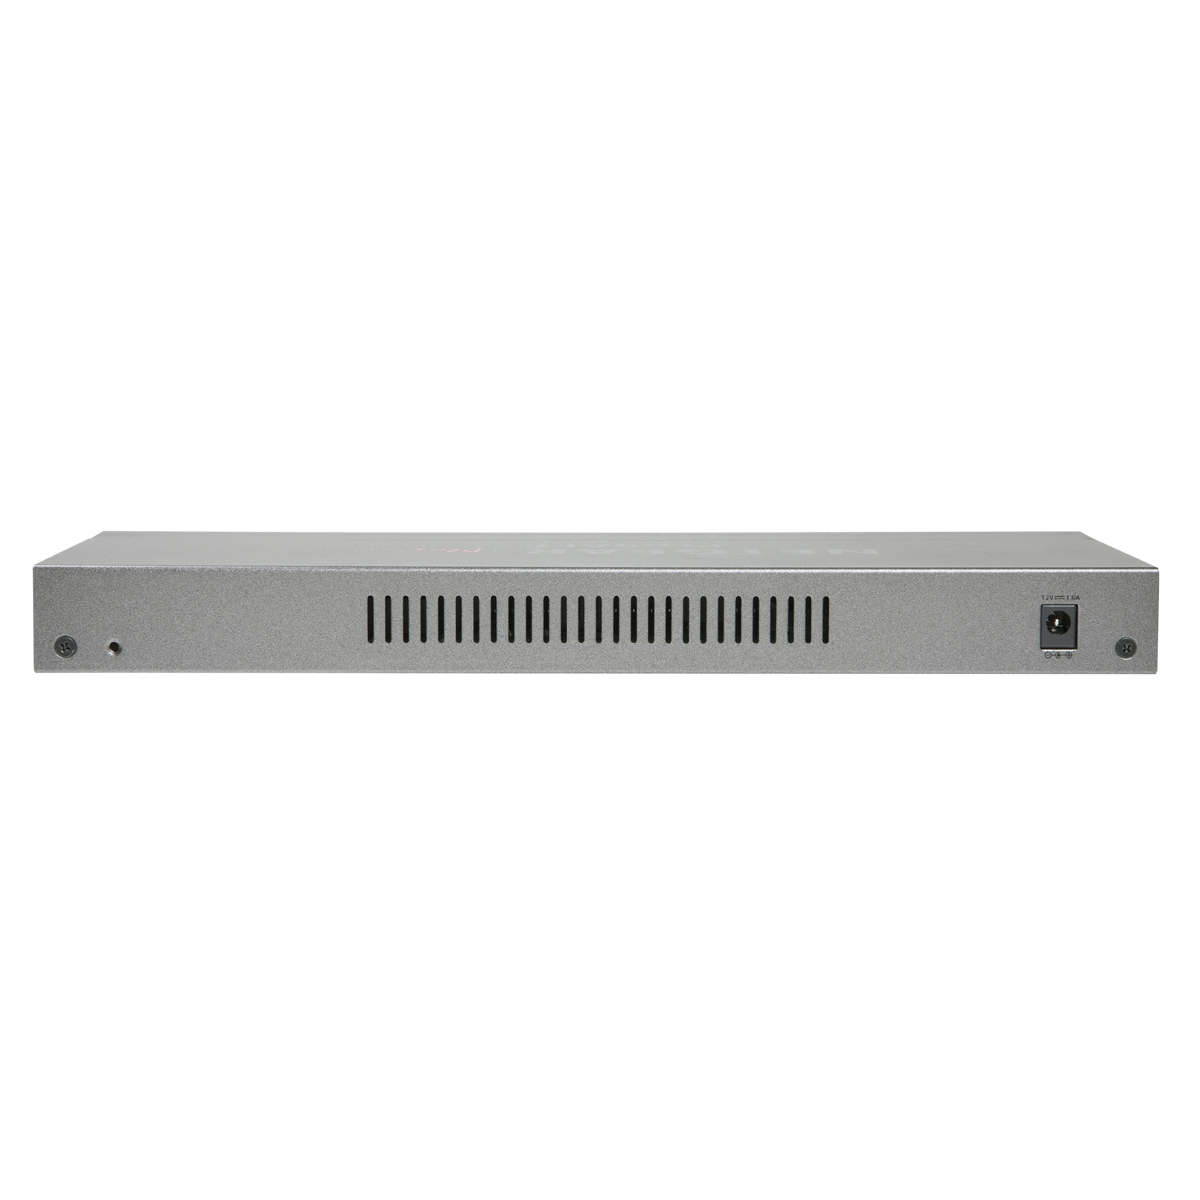 Switch Netgear 16 ports 10/100/1000 ProSafe Plus GS116Ev2 - 1